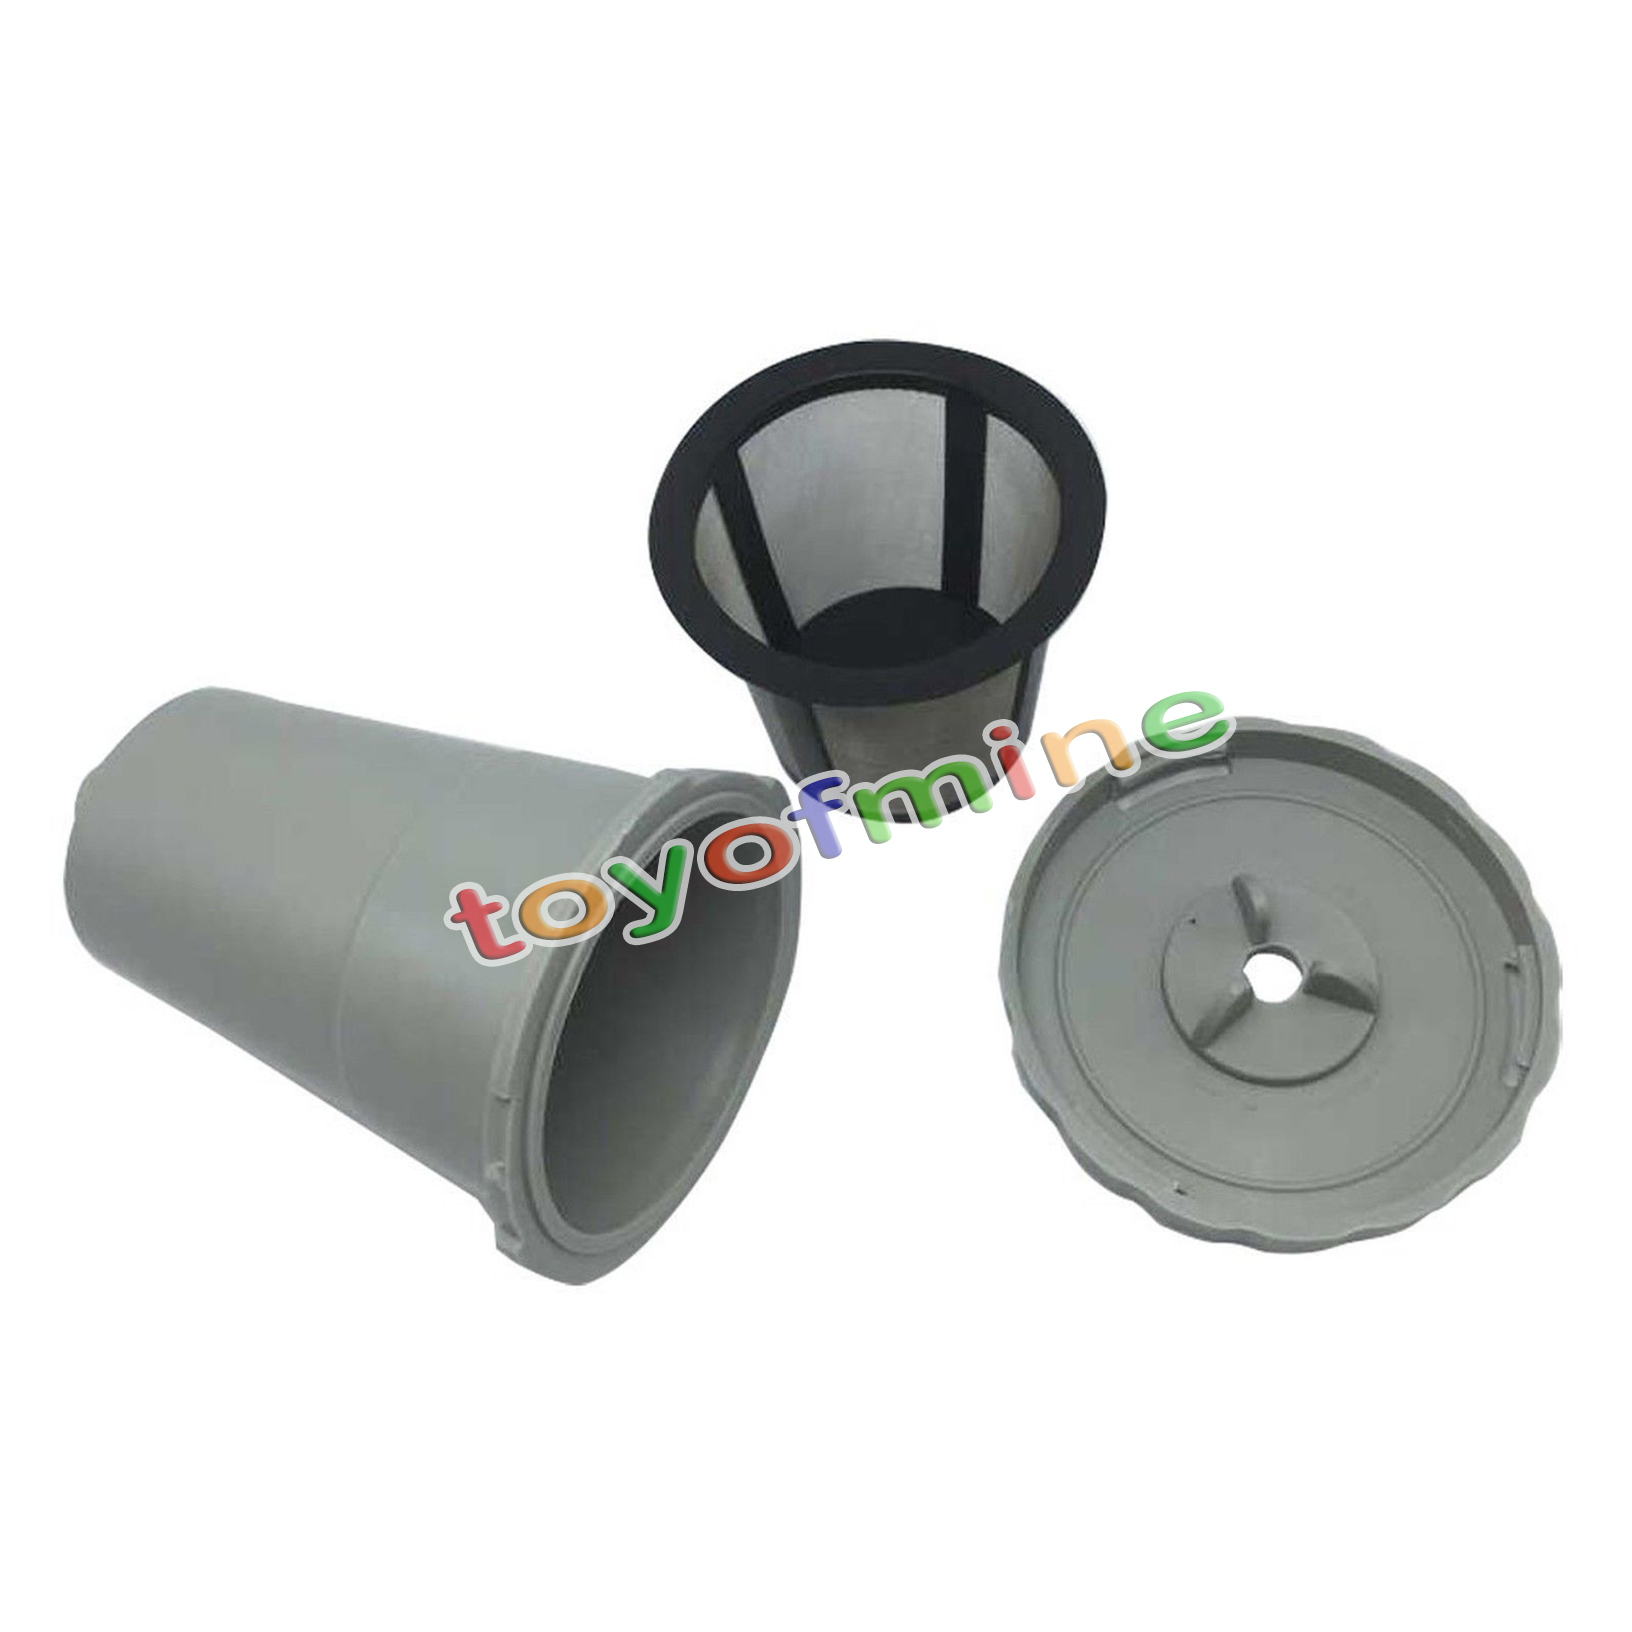 Reusable Coffee Filter Replacement Part For Keurig My K